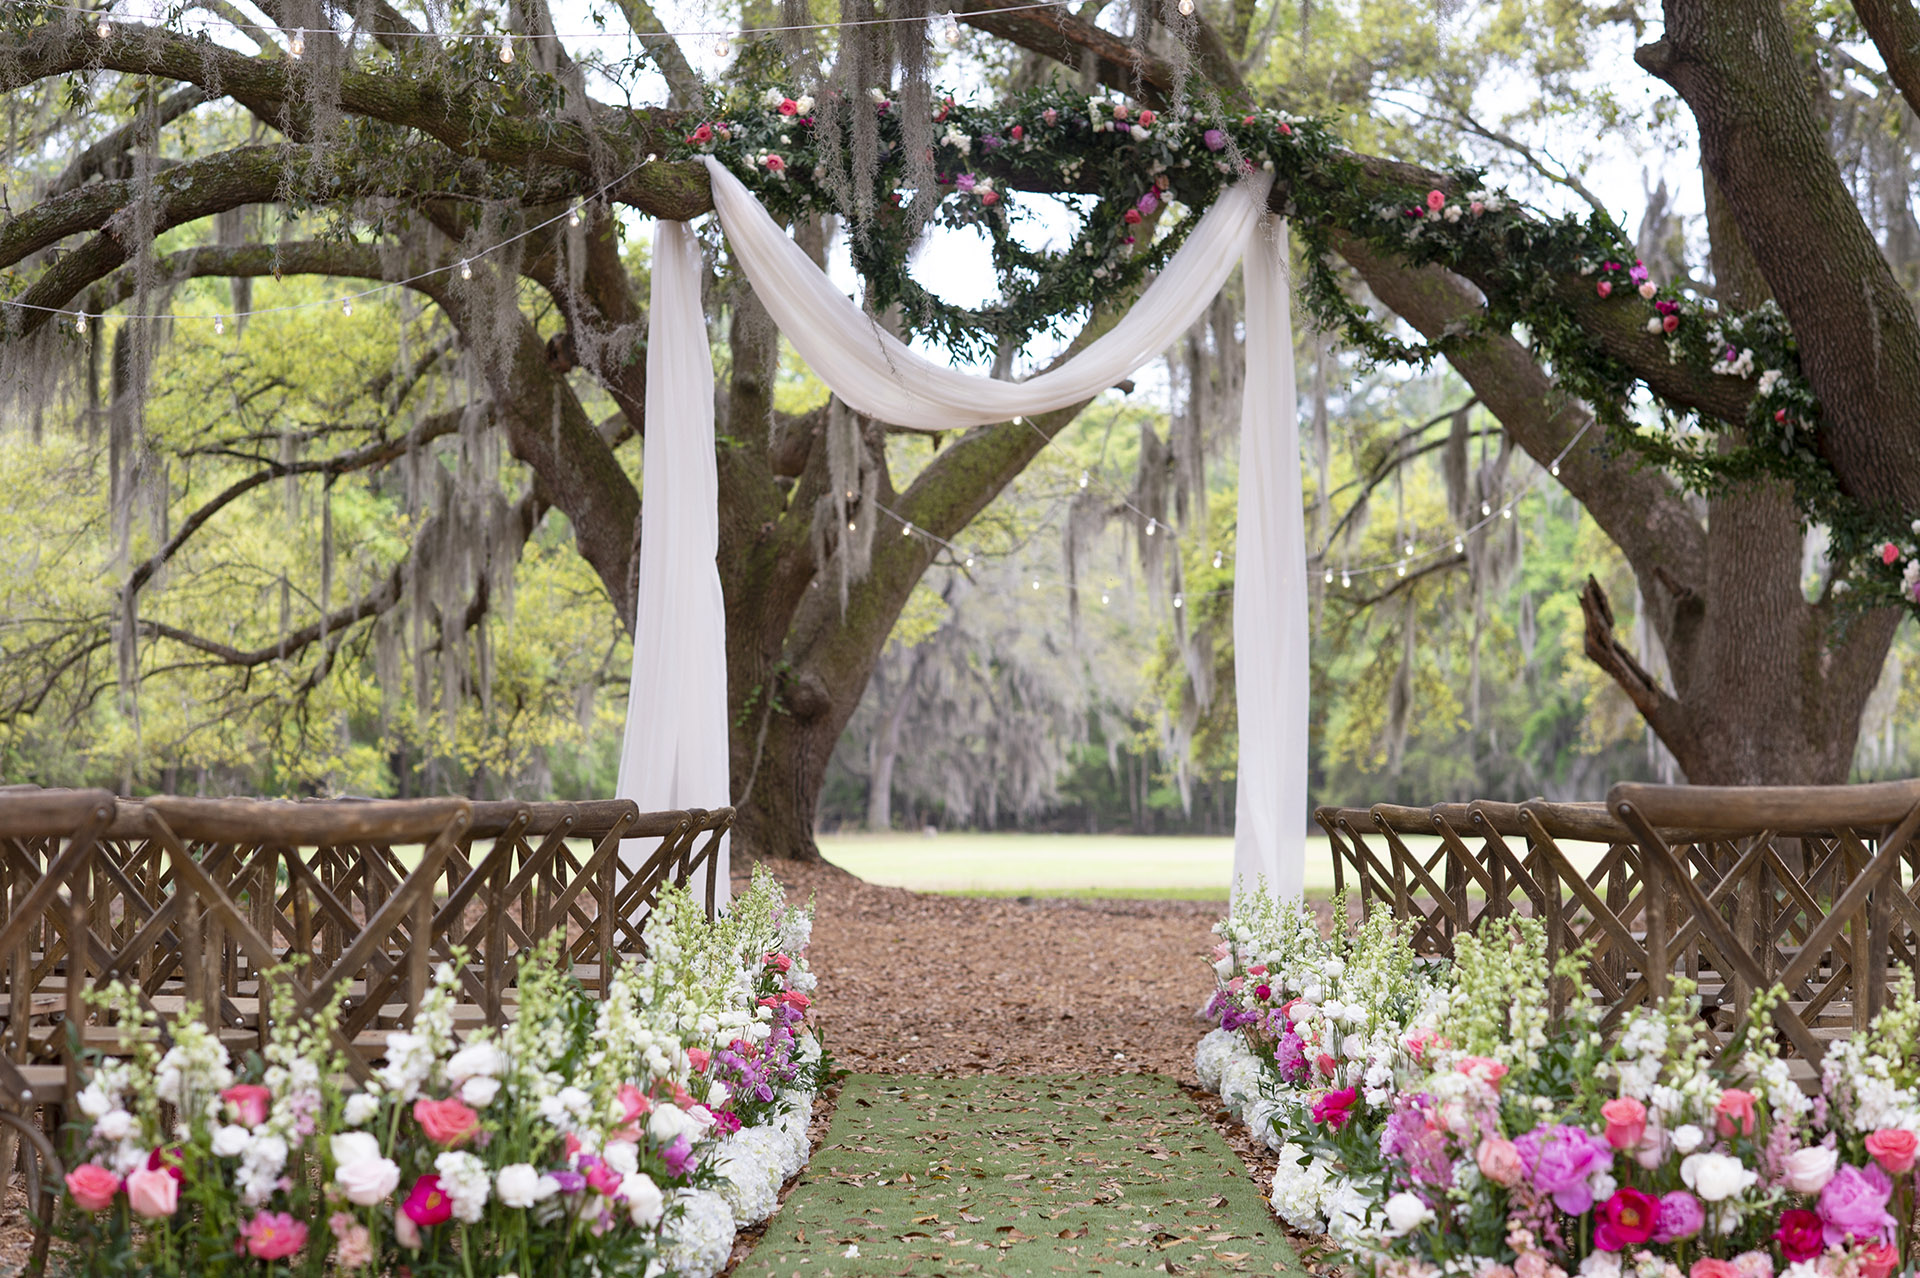 Angel Oak Canopy wedding ceremony with white chiffon draping at the altar and the aisle lined with pink and white spring florals